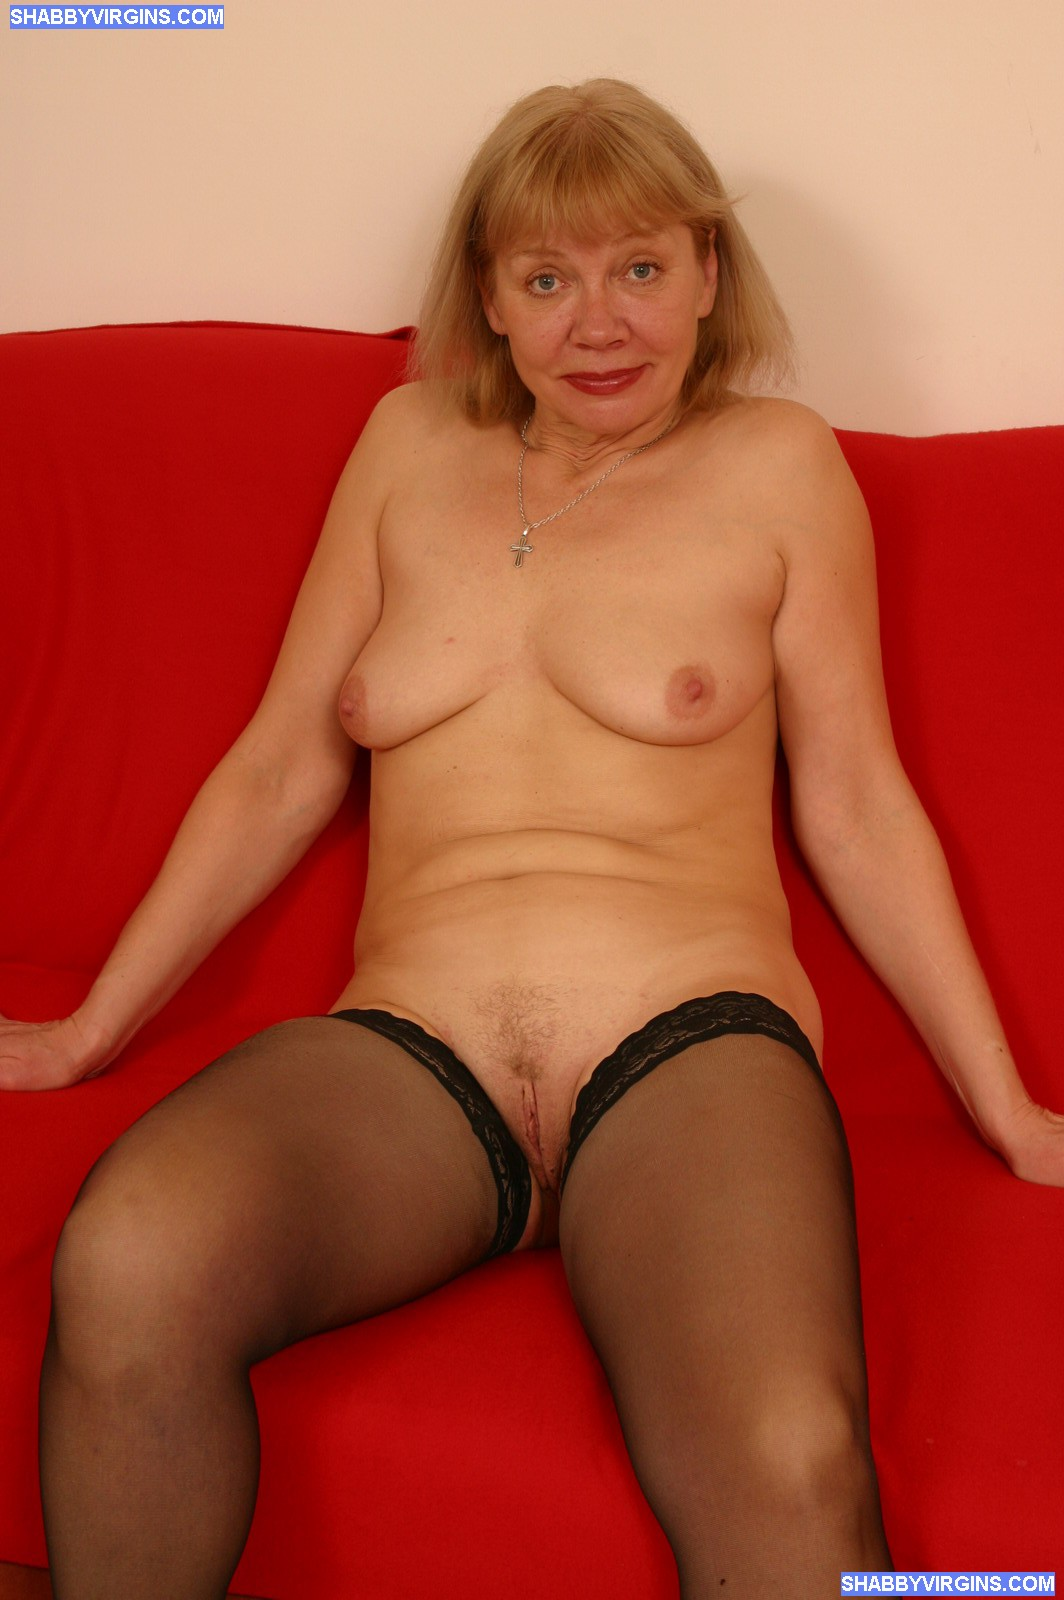 ... Wrinkled blonde shows off and toys her wet pussy ...